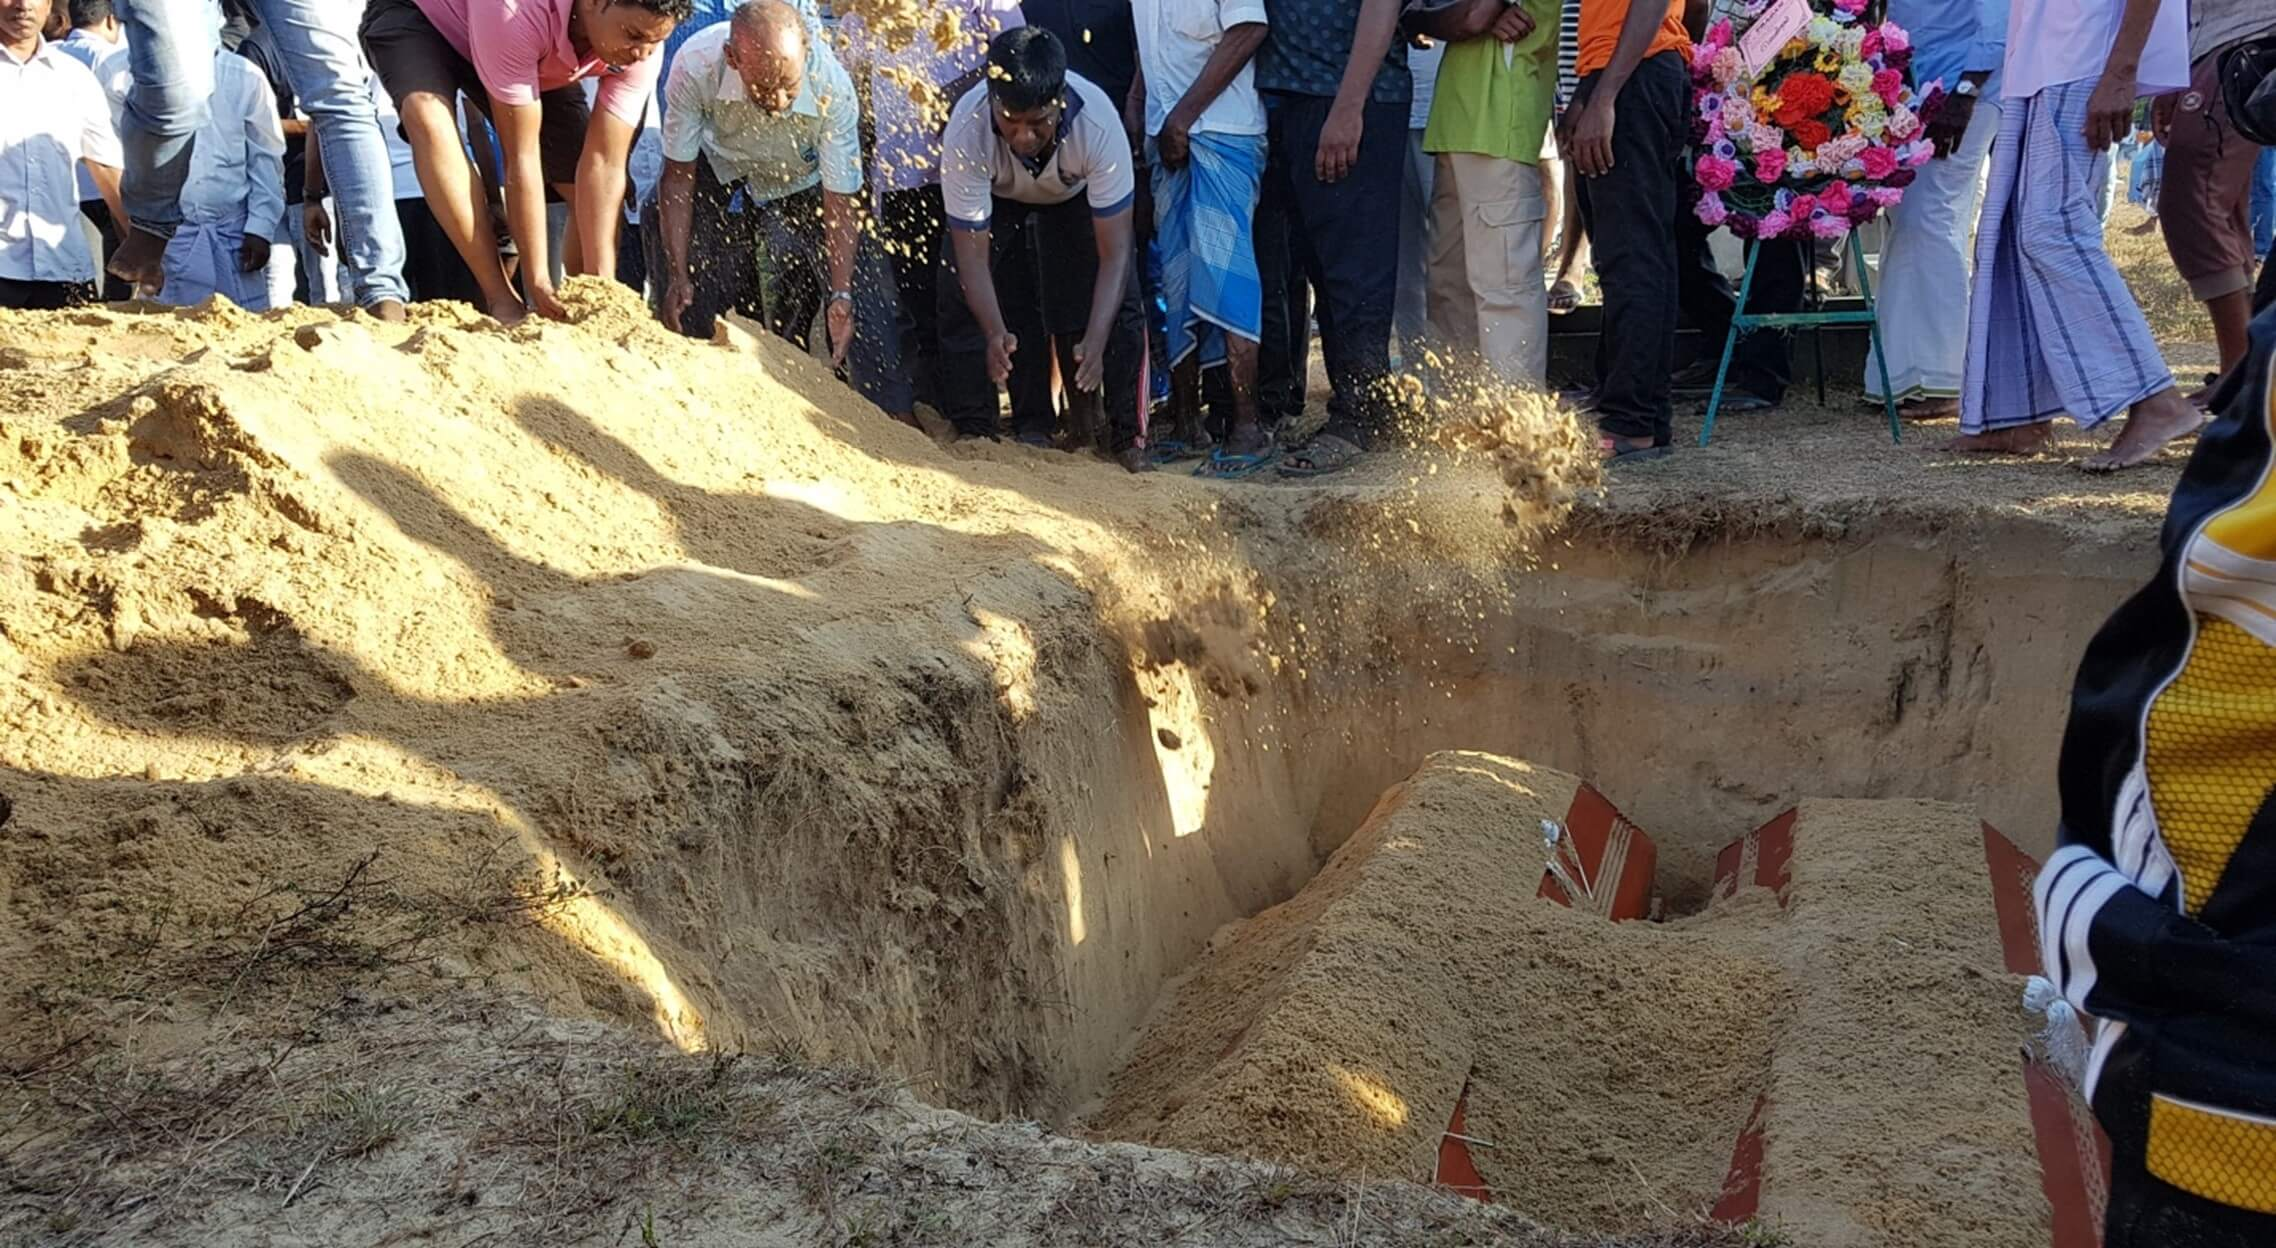 Photo of the burying of coffins for a Sunday school teacher and 13-year-old boy who died in the Sri Lanka church suicide bombings